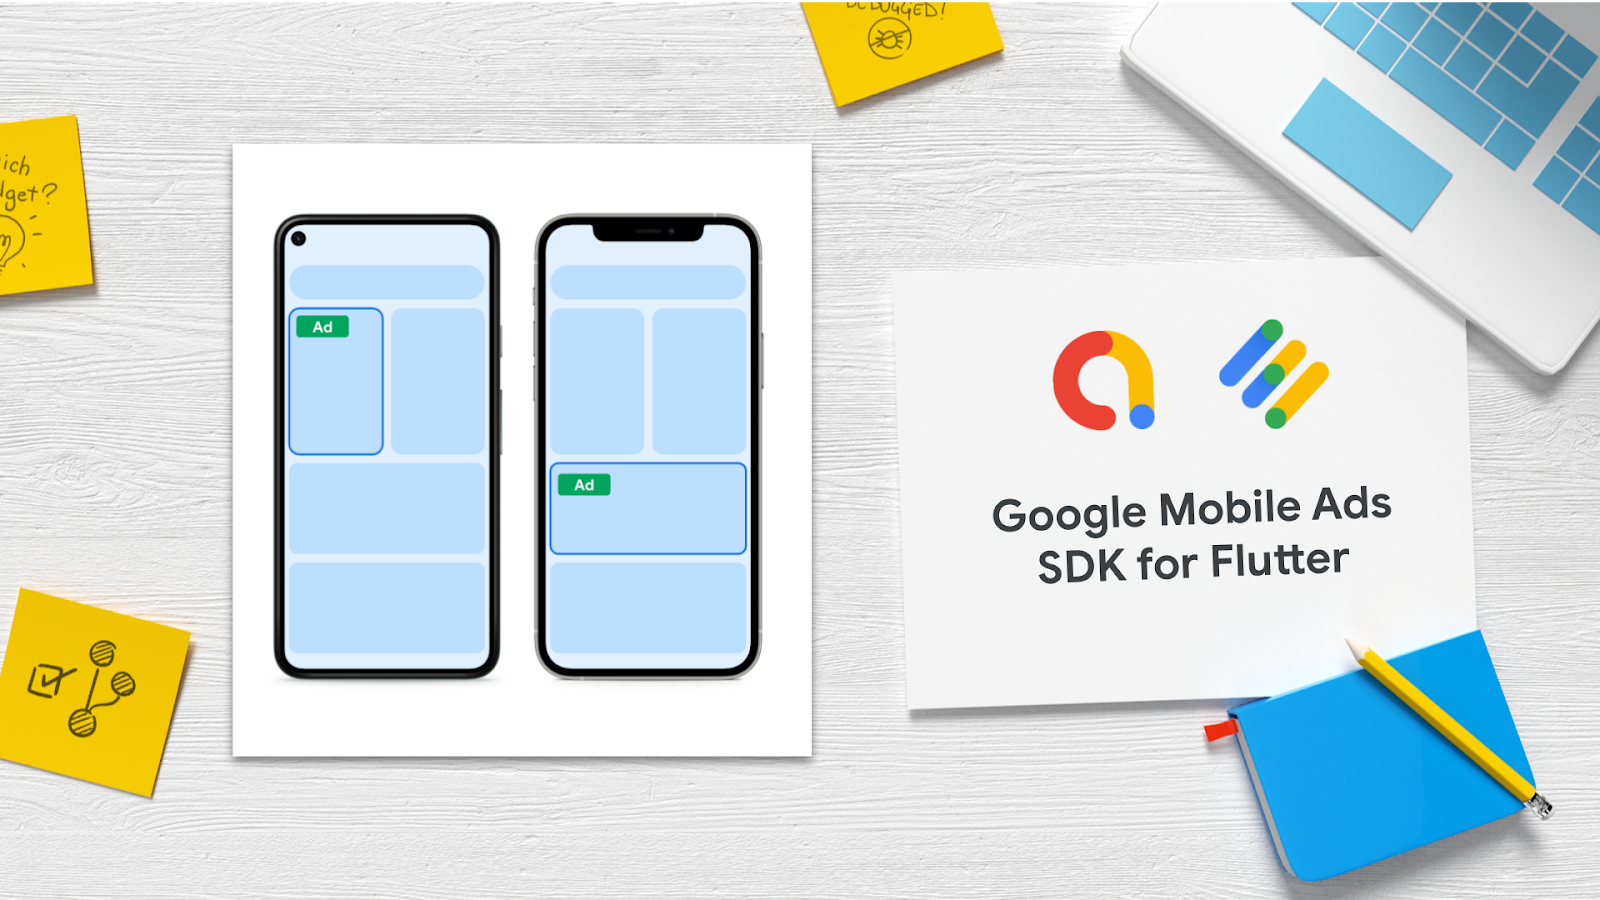 Google Mobile Ads SDK for Flutter